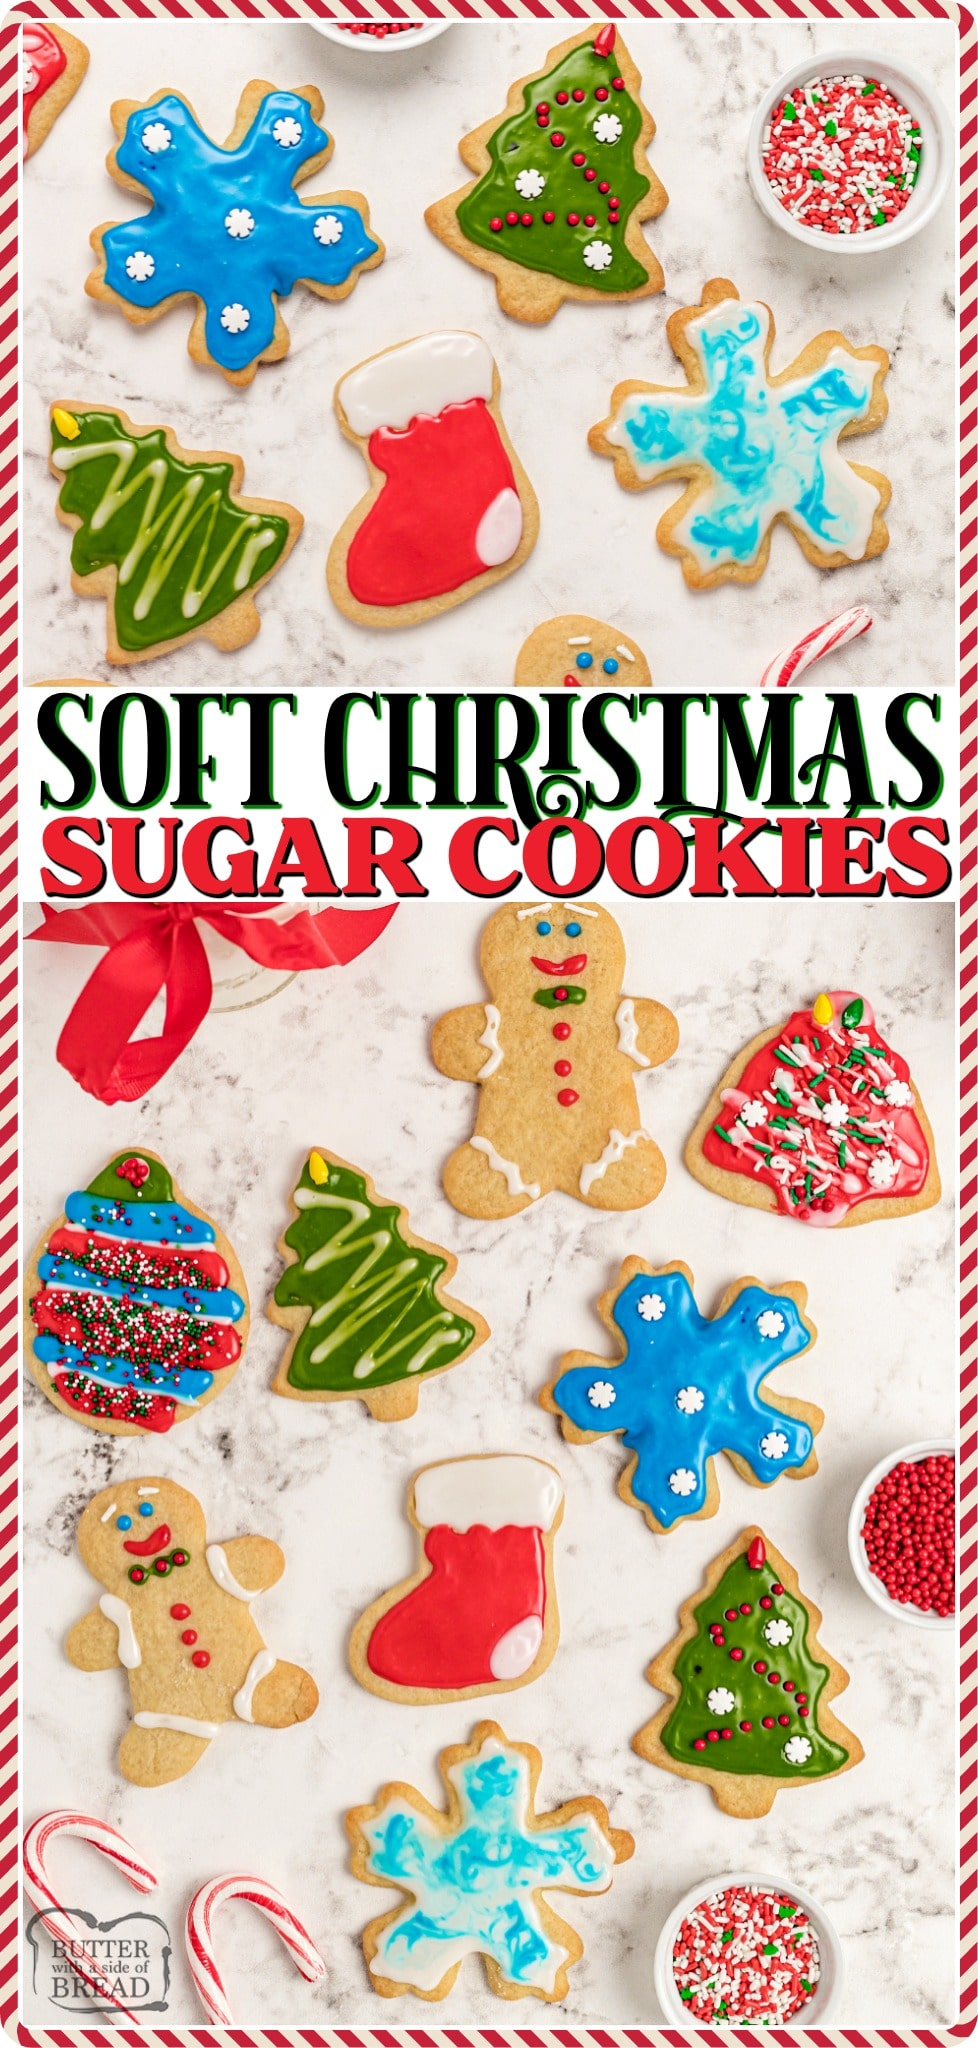 Soft Christmas Sugar Cookies made with classic ingredients & frosted with a simple Royal icing. Perfect holiday Sugar Cookie recipe for festive Christmas cut out cookies! #Christmas #cookies #cutout #sugarcookies #royalicing #baking #easyrecipe from BUTTER WITH A SIDE OF BREAD